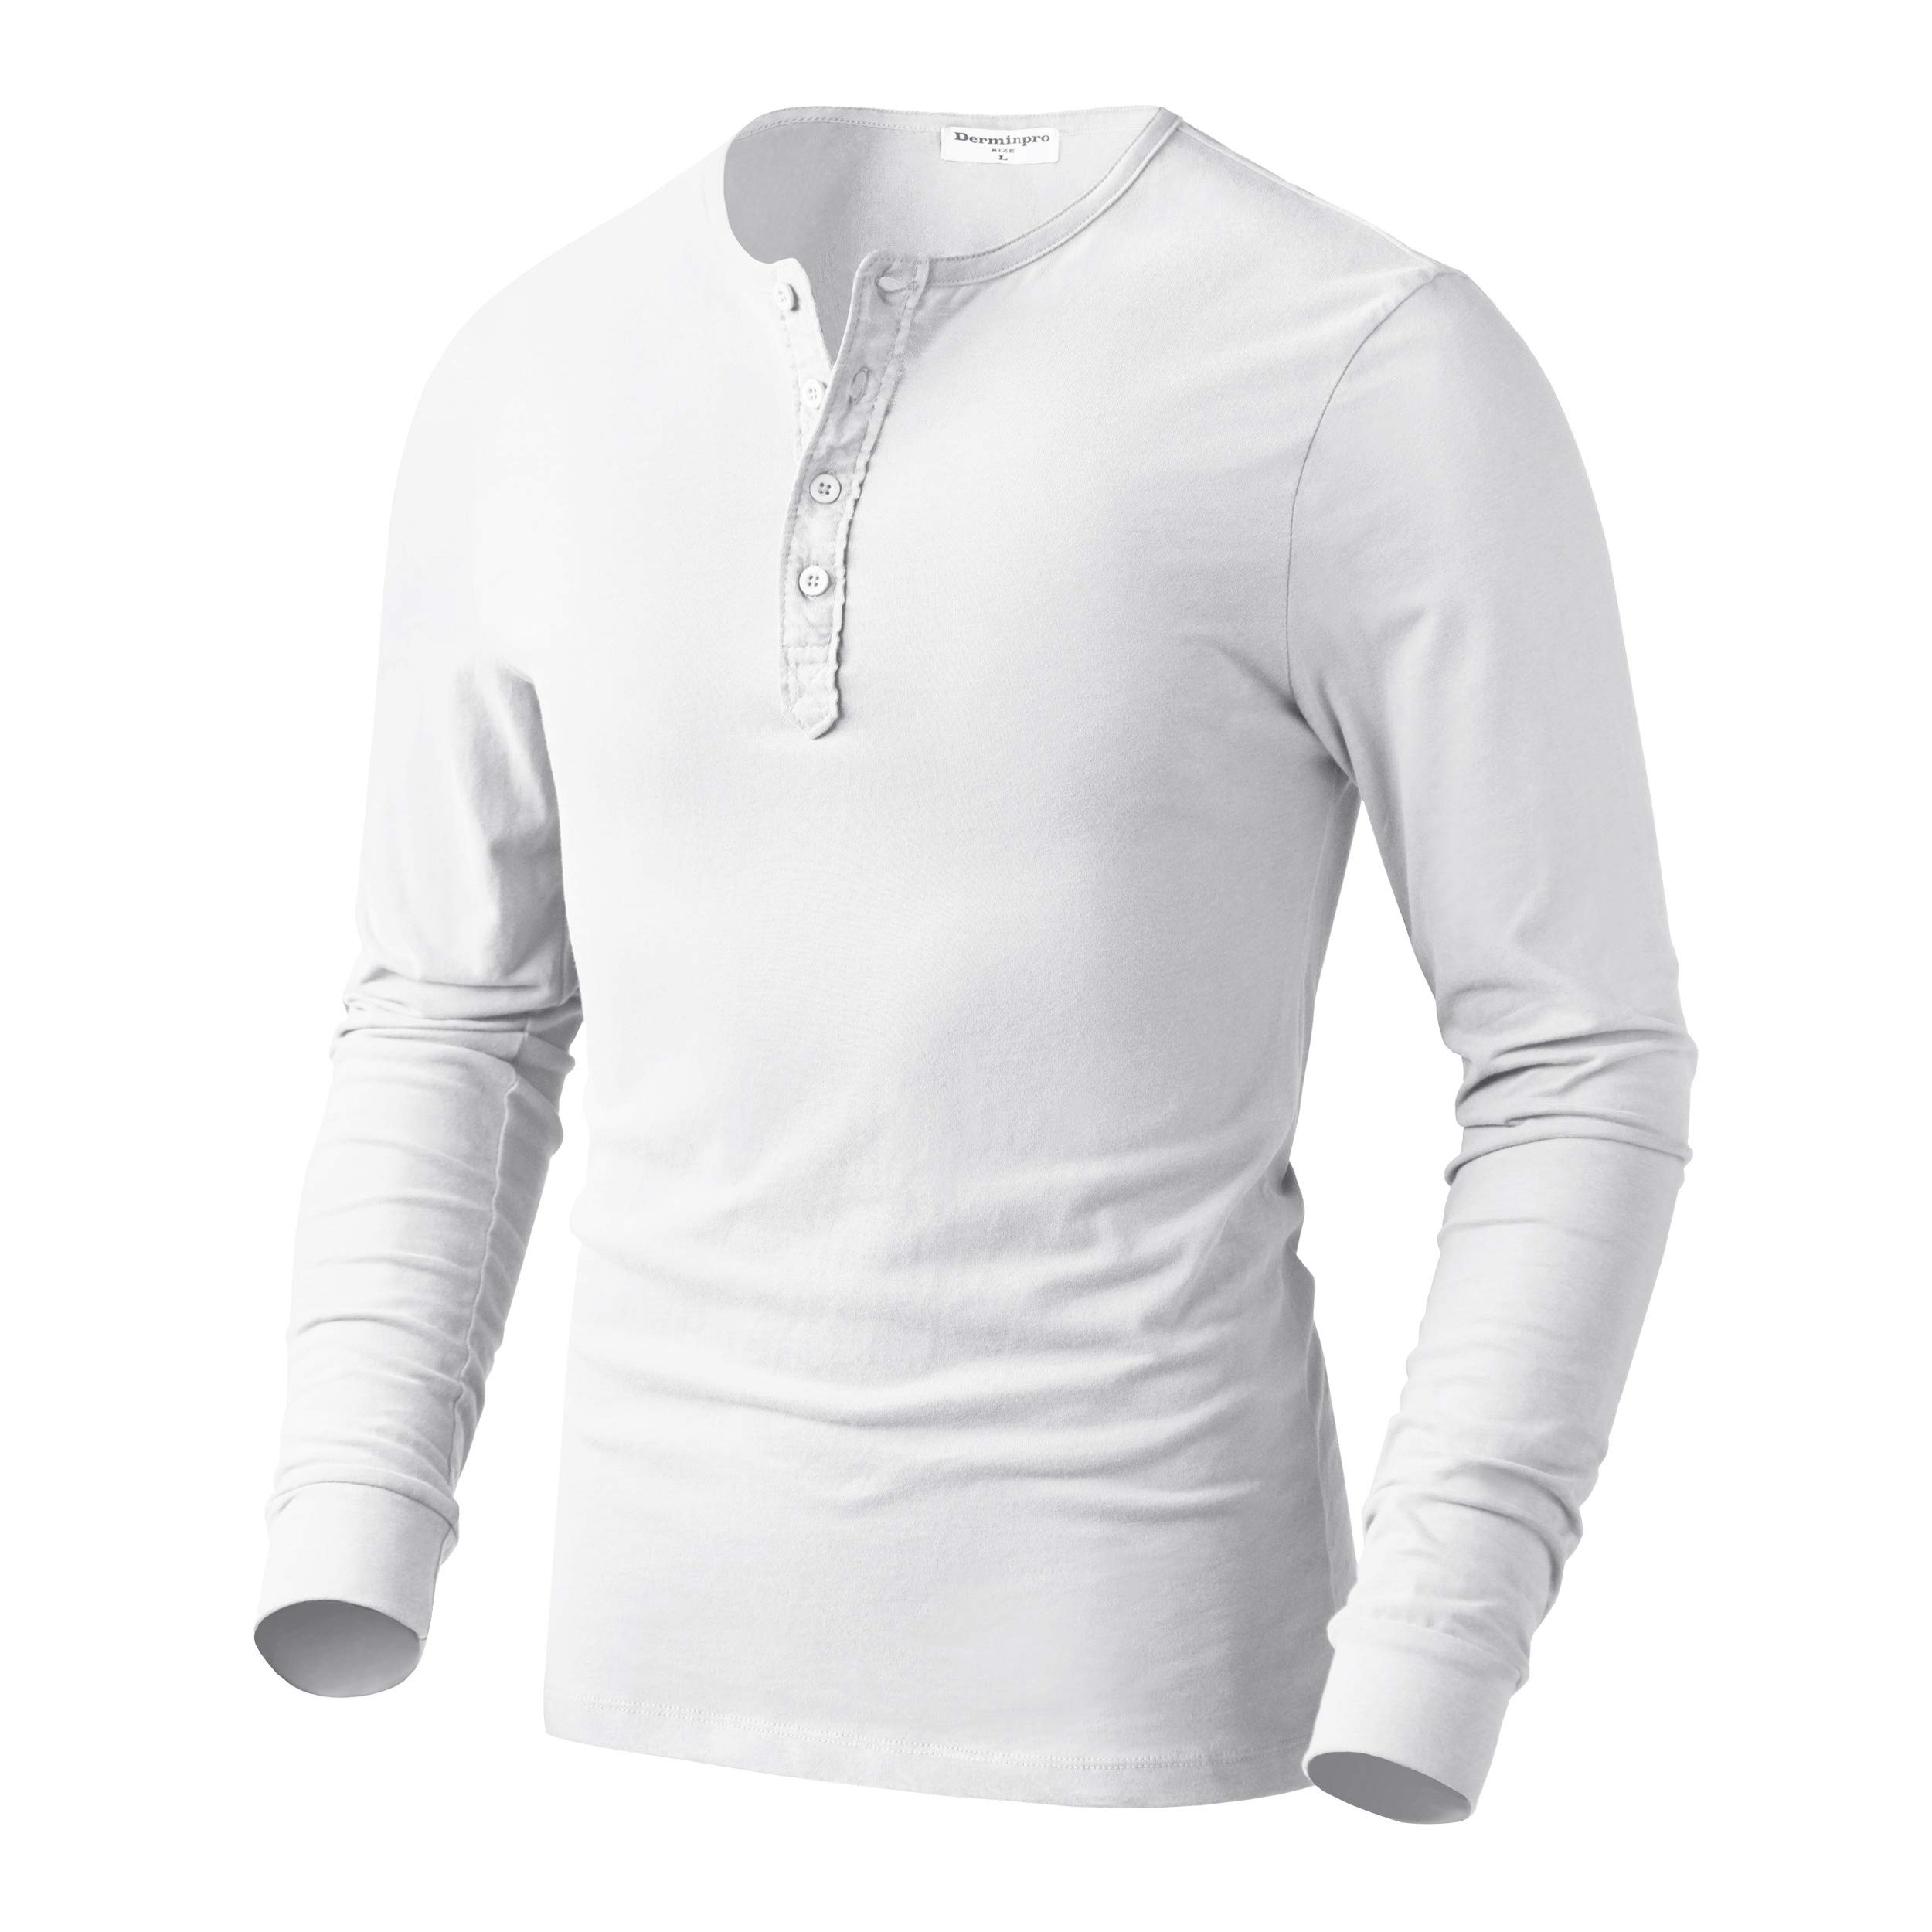 Derminpro Men's Premium Cotton Henley Long Sleeve T-Shirts White XX-Large